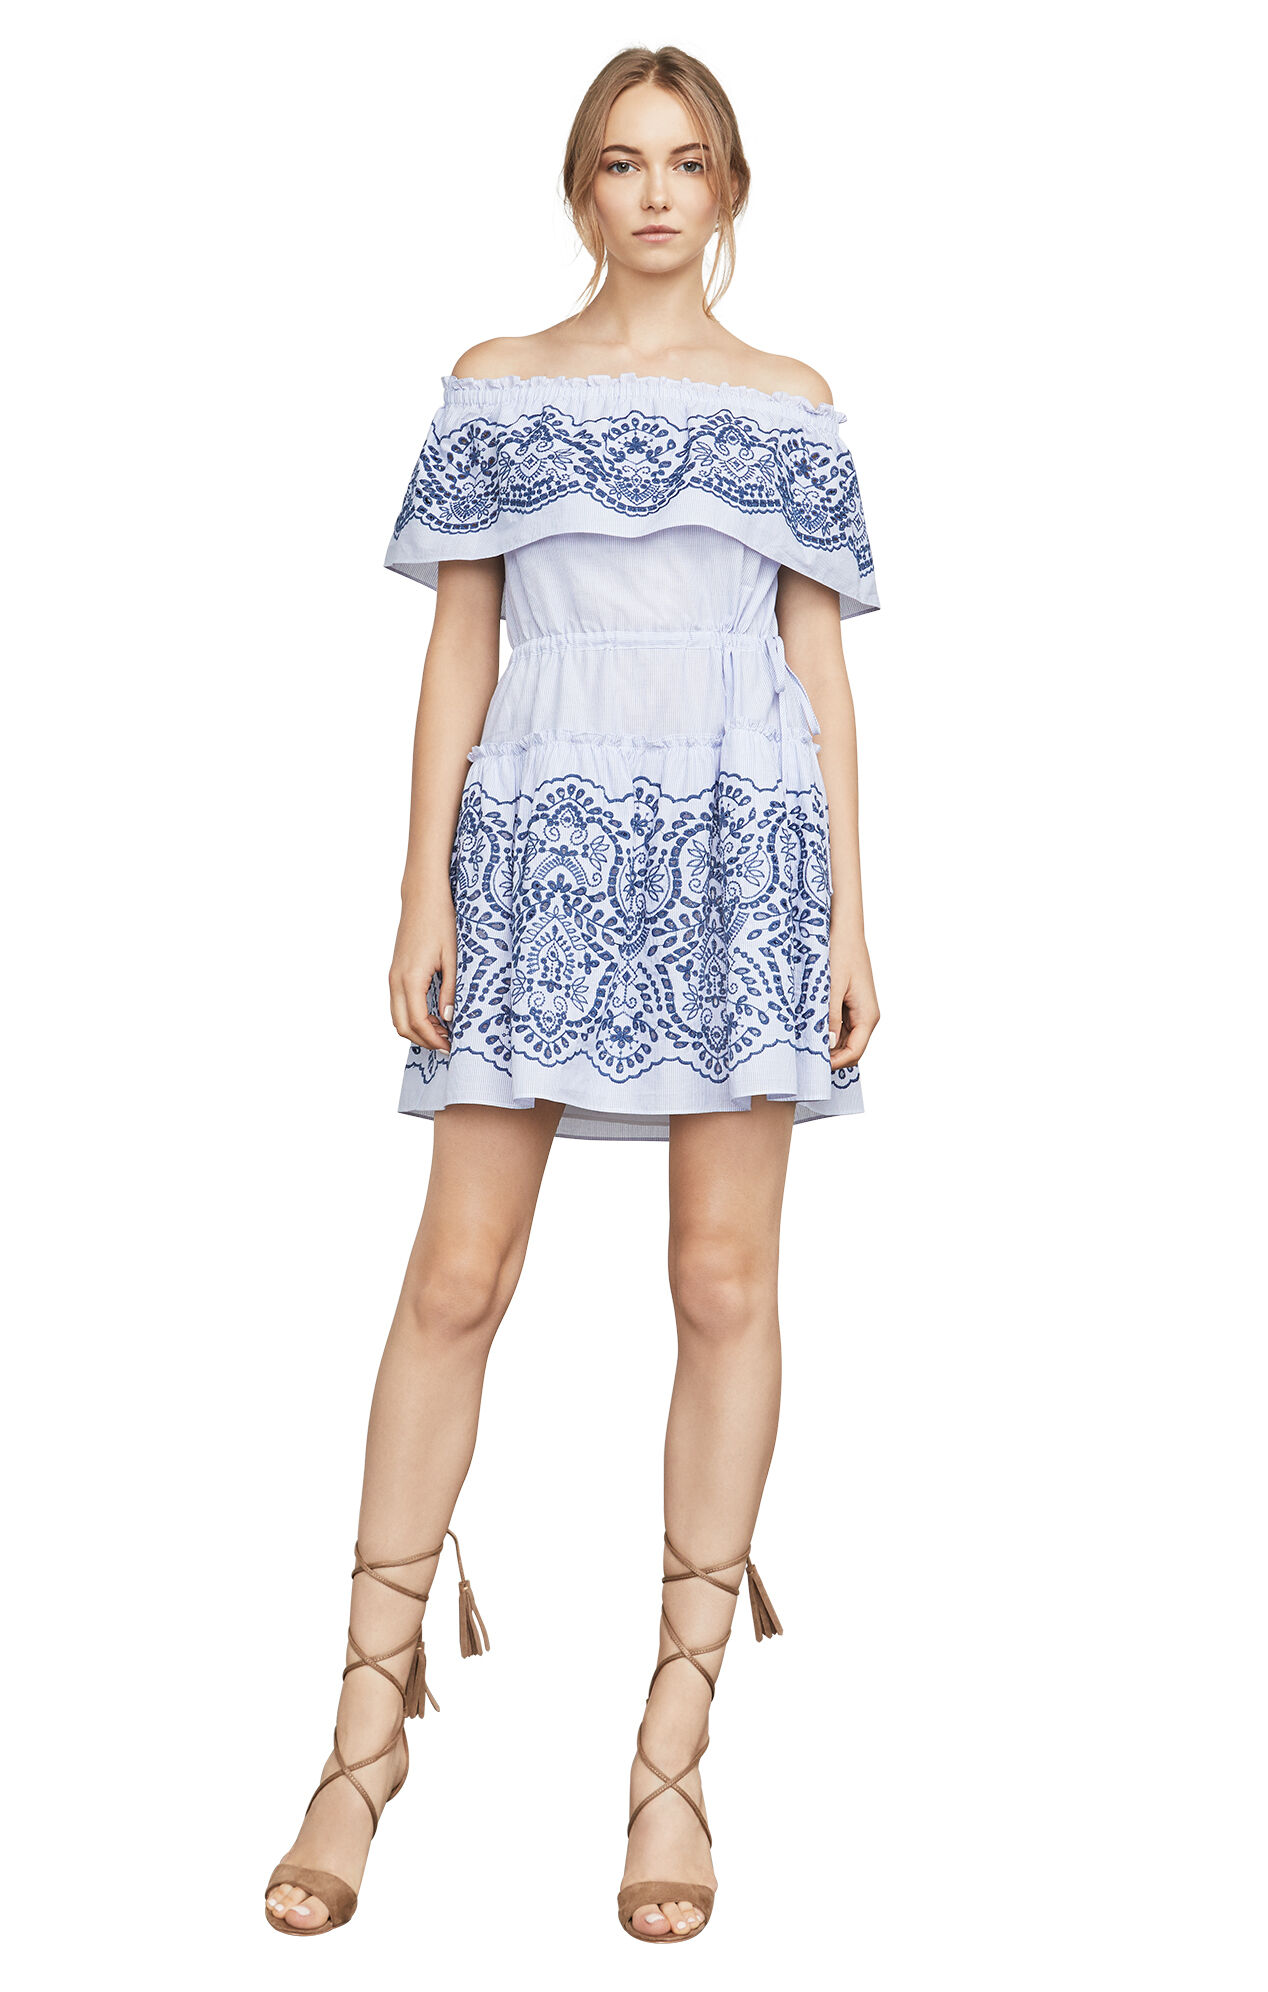 Lo lo lord and taylor party dresses - Next